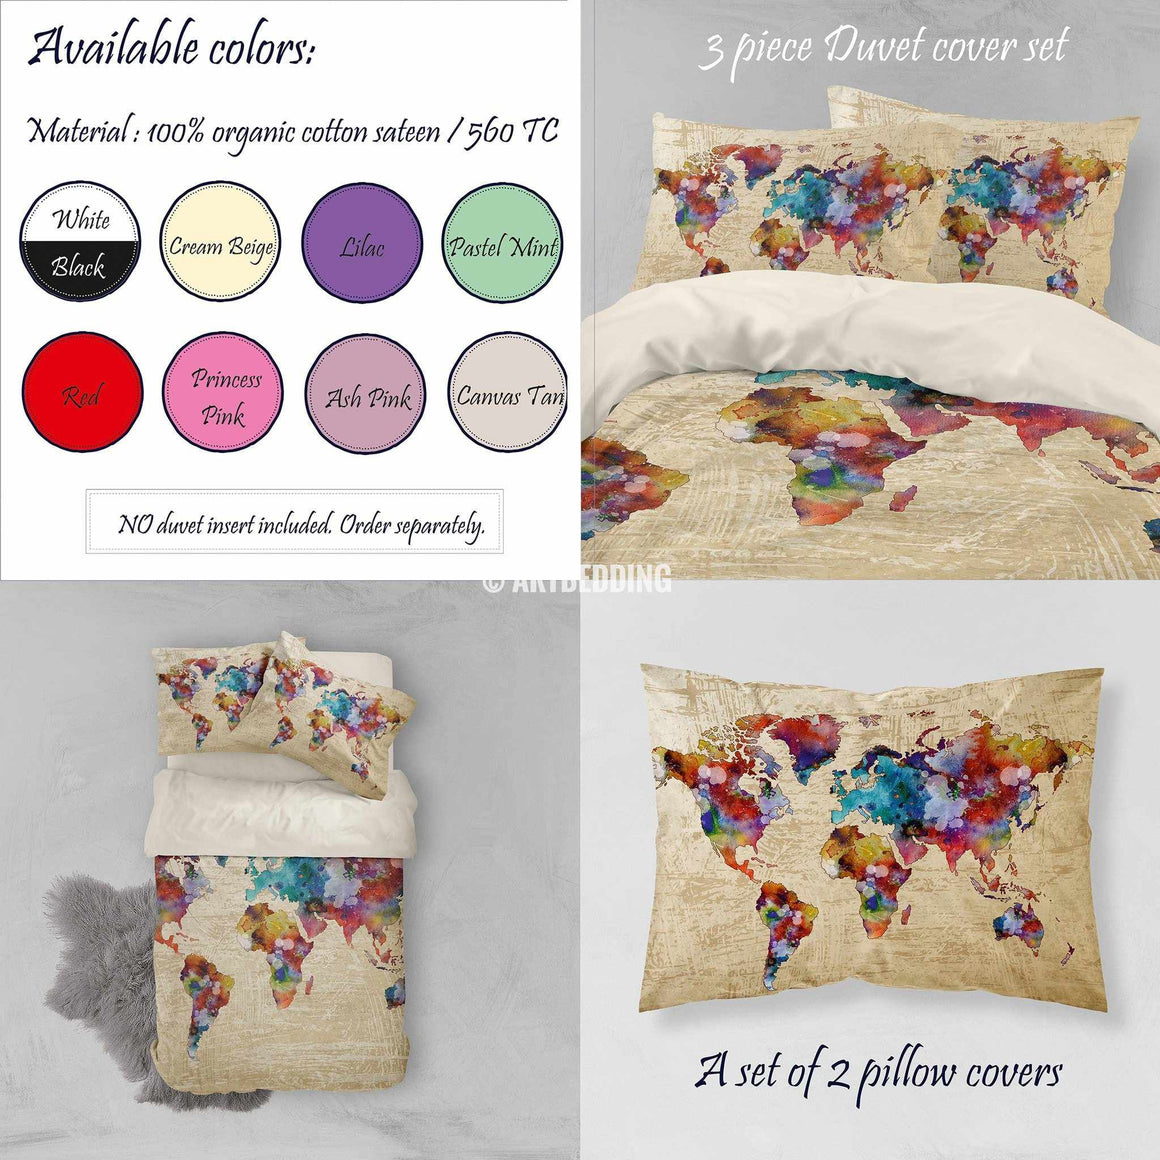 Watercolor world map bedding, Boho chic Watercolor duvet cover set, Grunge splashes duvet cover set, College bedding, dorm bedspread Bedding set